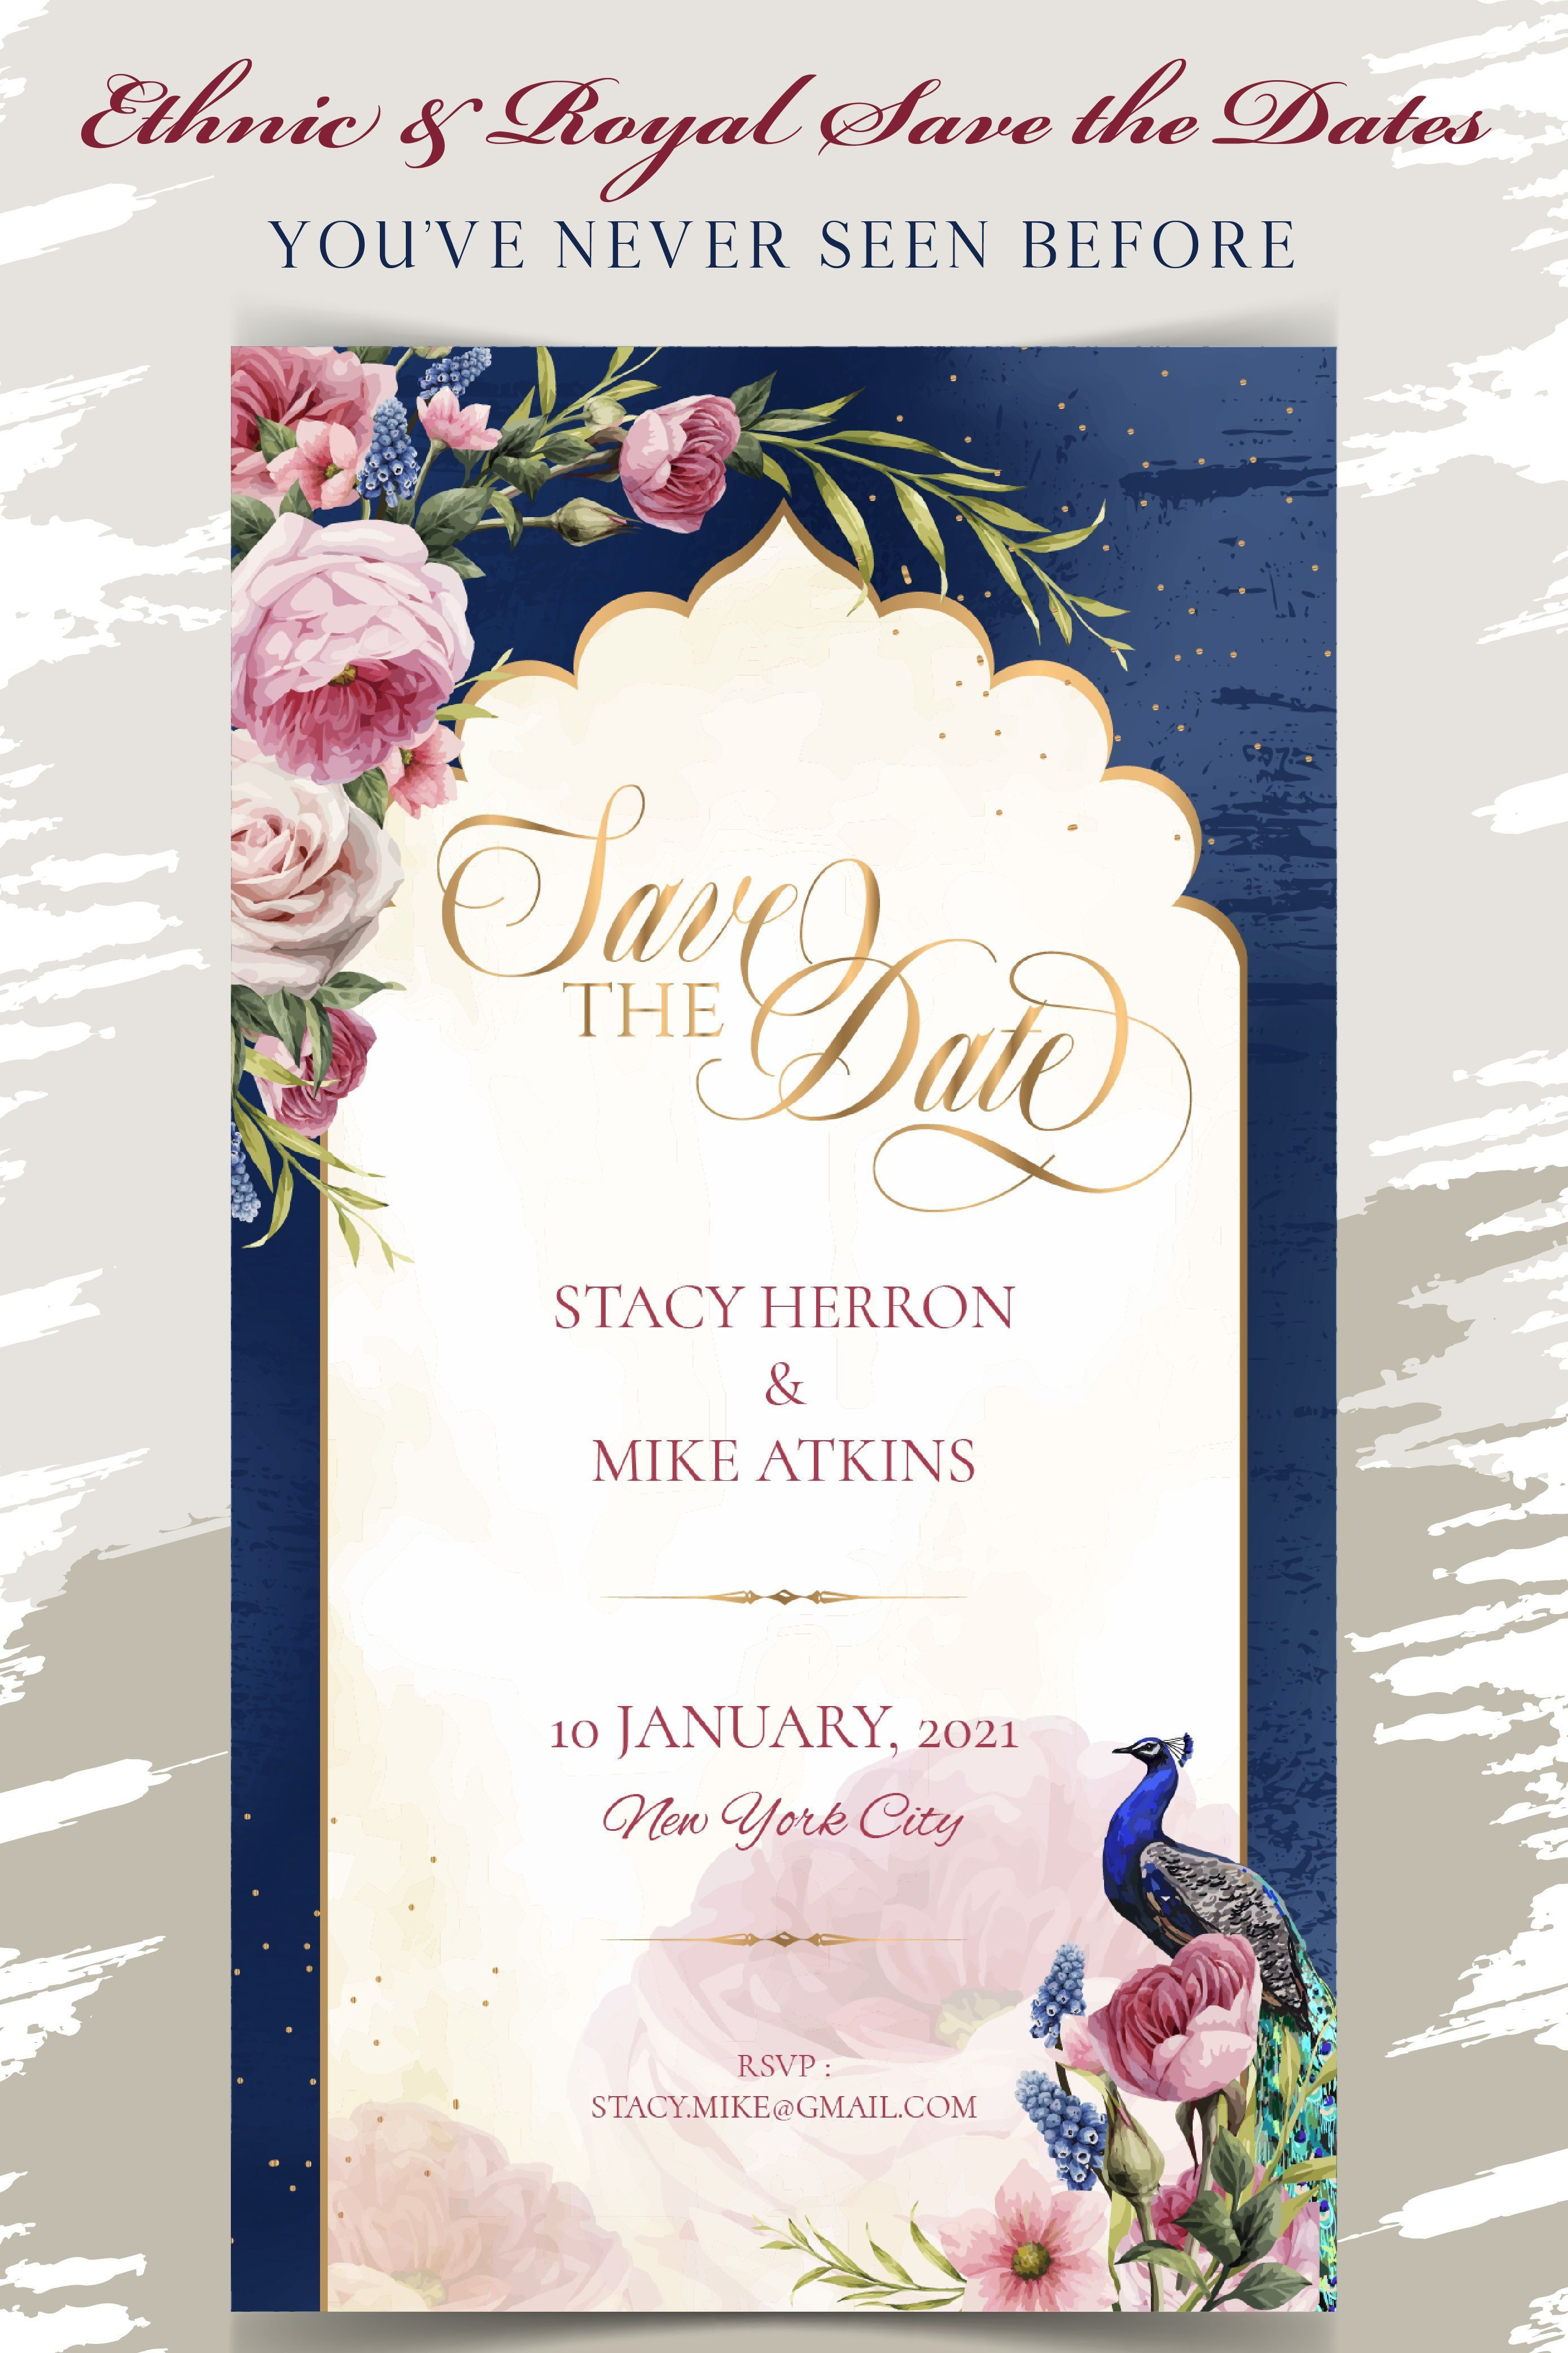 Pin On Save The Date Fed 13 Marriage Enrichment